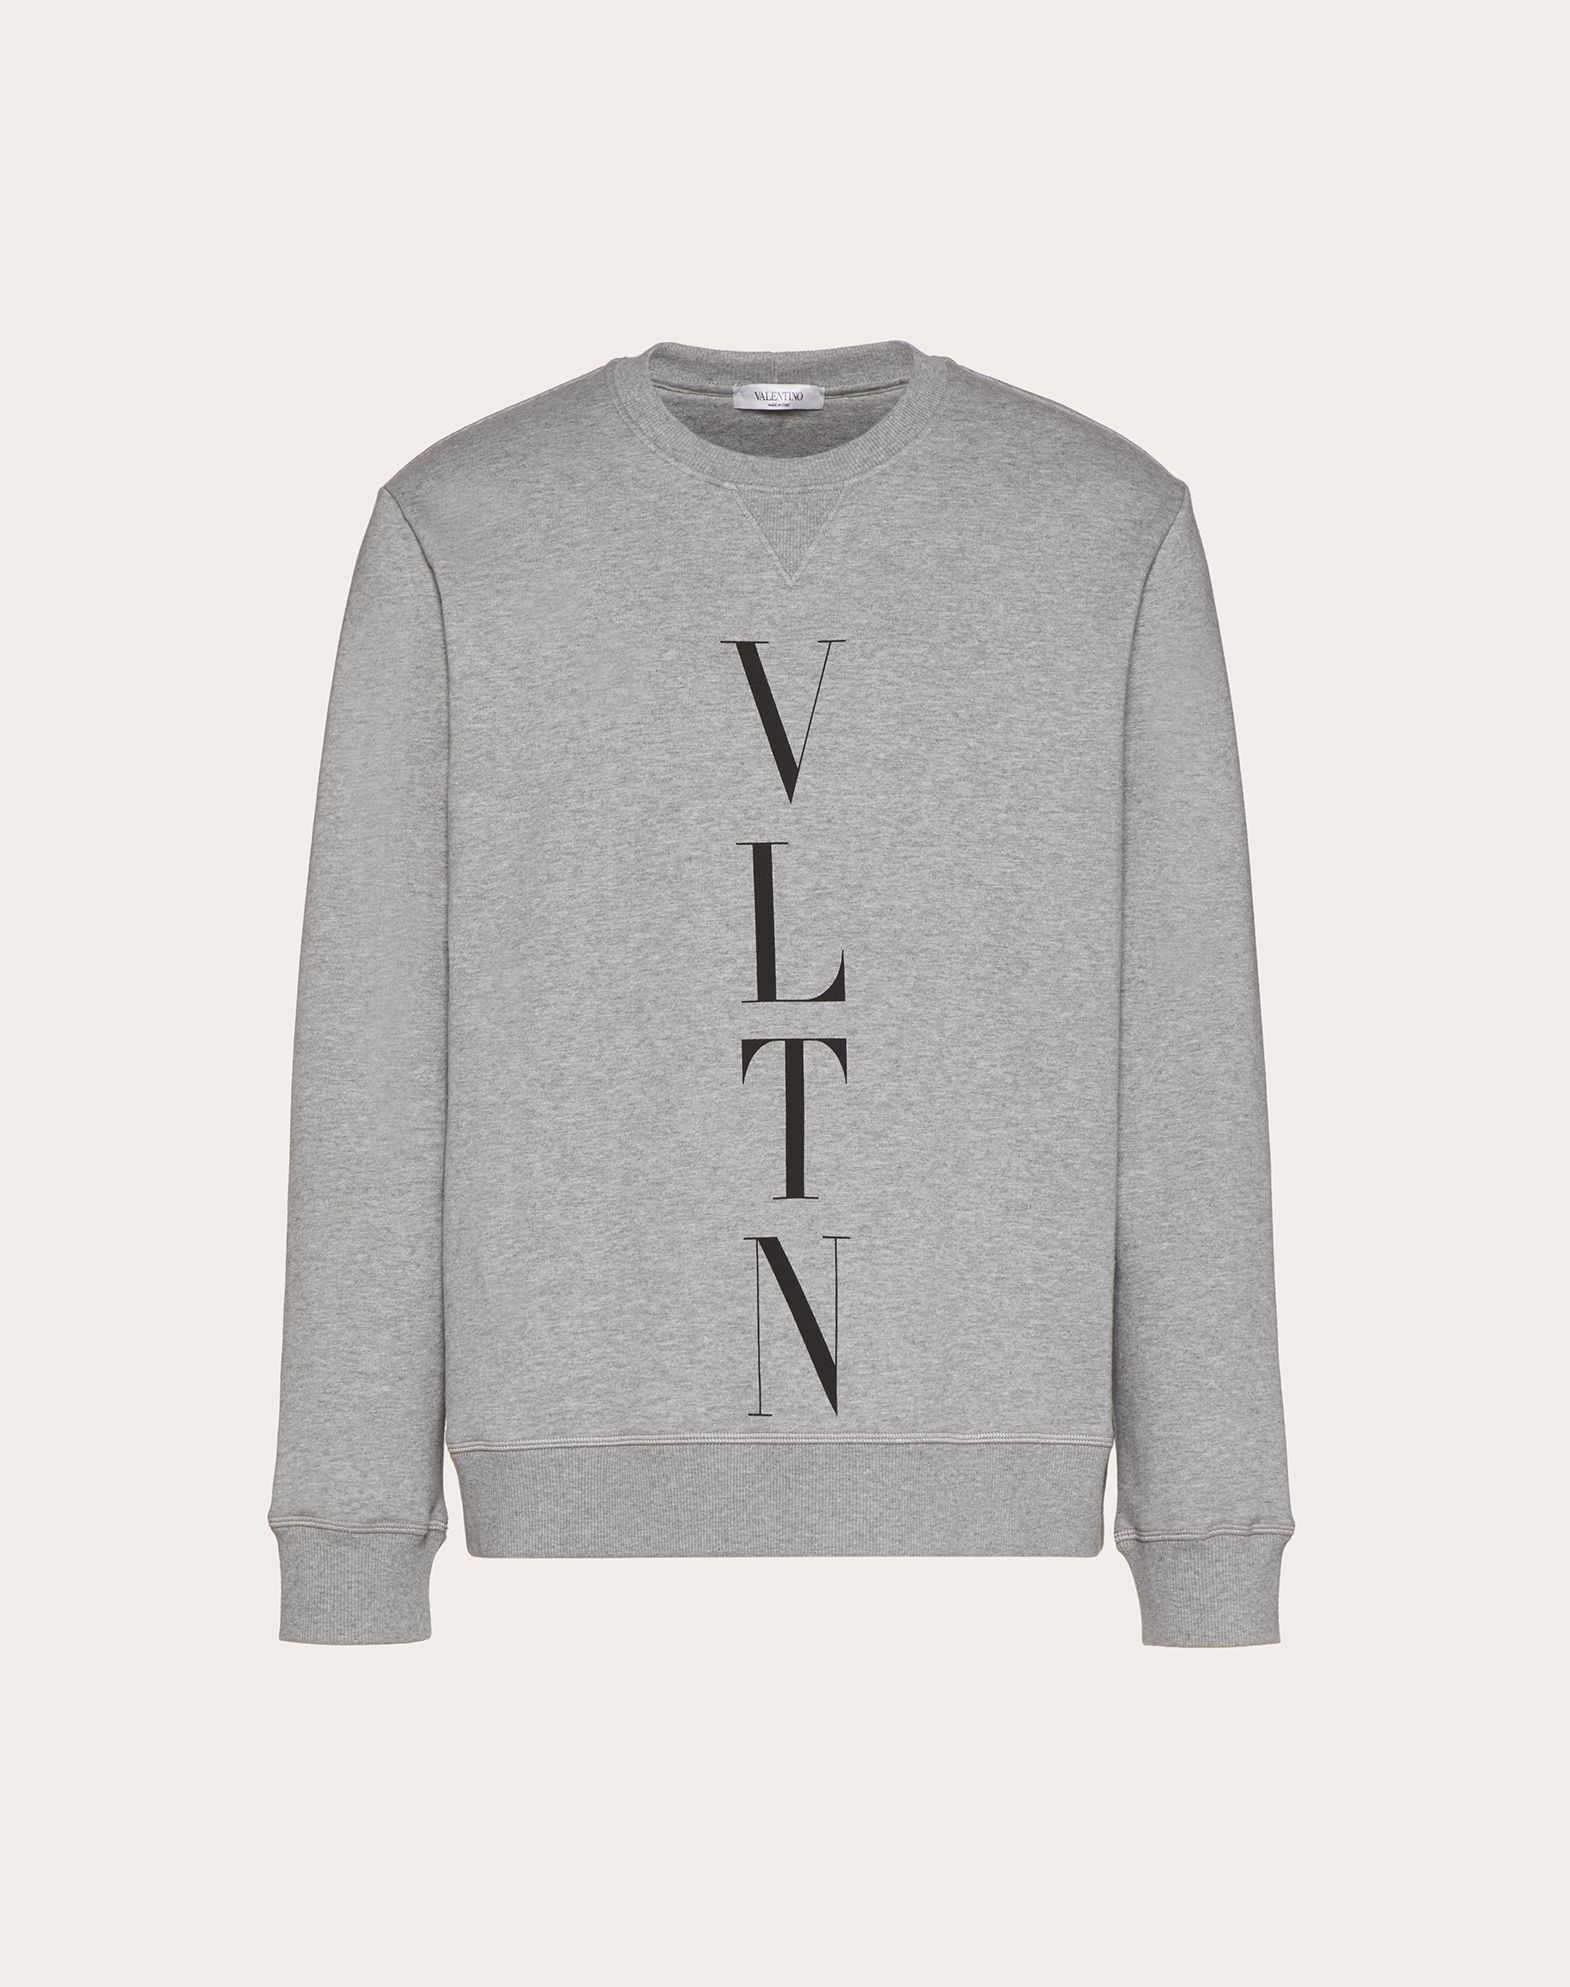 VLTN print hoodie - Black Valentino Clearance Cheap Online Get To Buy Free Shipping Largest Supplier Explore Cheap Online J0GBd6rch0